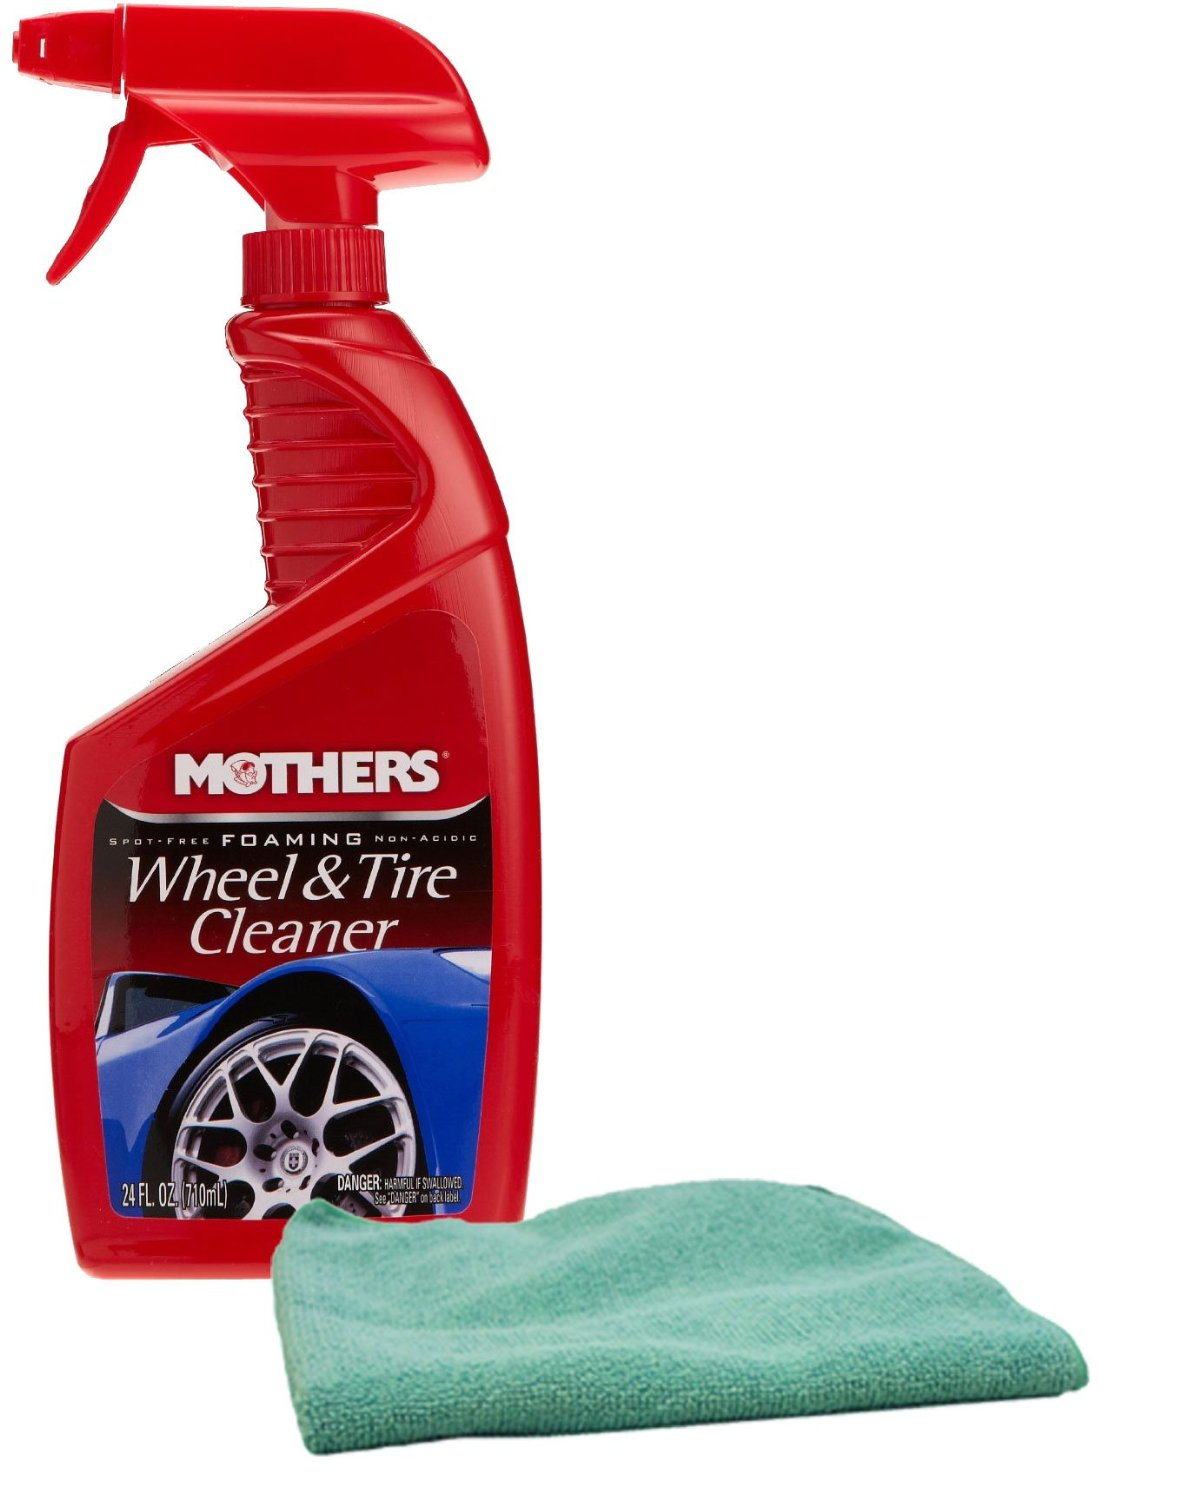 Mothers Foaming Wheel & Tire Cleaner & Microfiber Cloth Kit